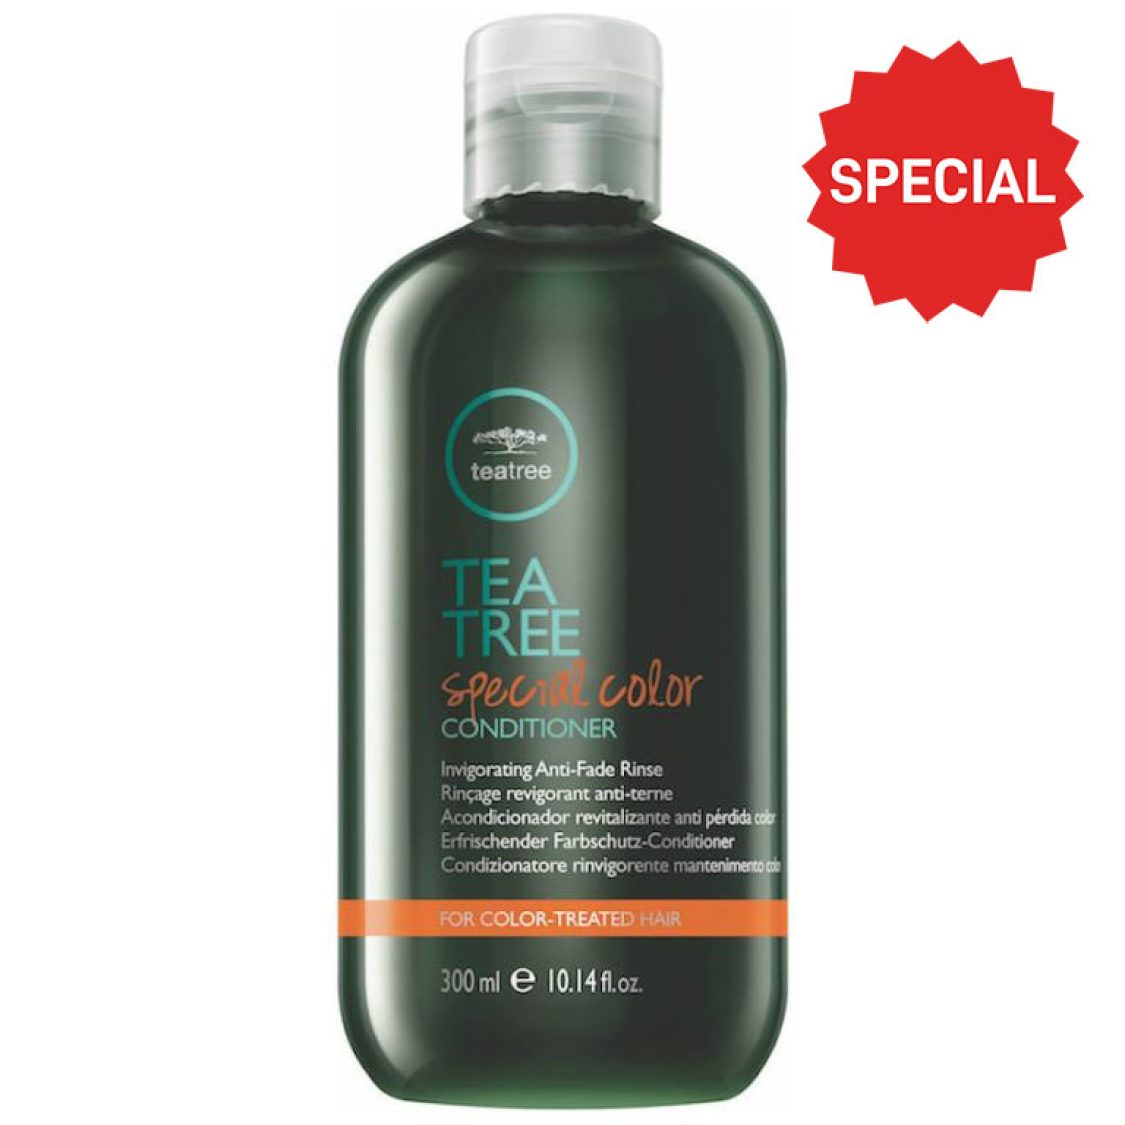 Paul Mitchell - Tea Tree Color - Special Color Conditioner 300ml